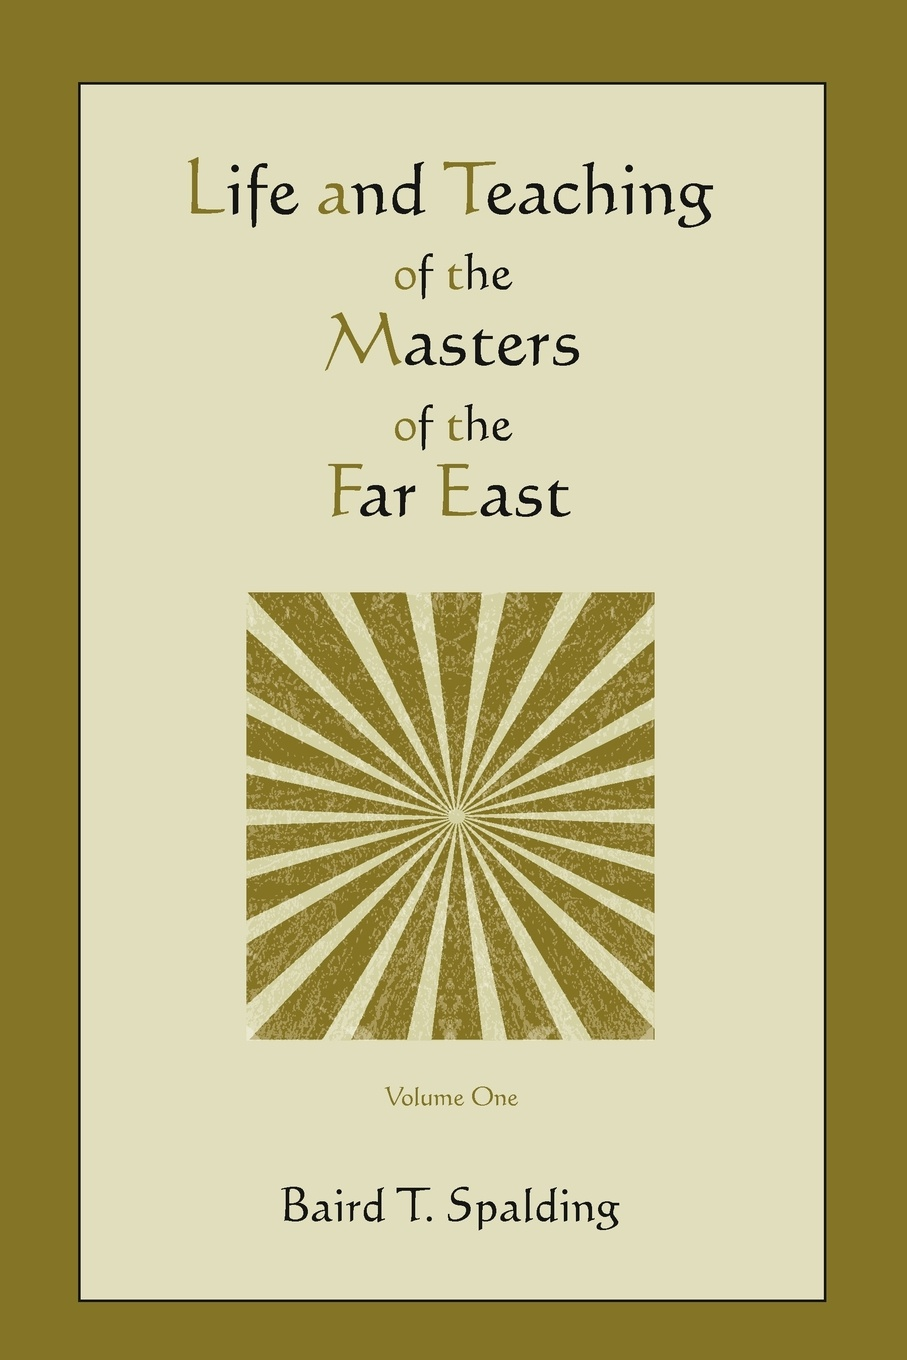 Baird T. Spalding Life and Teaching of the Masters of the Far East (Volume One)